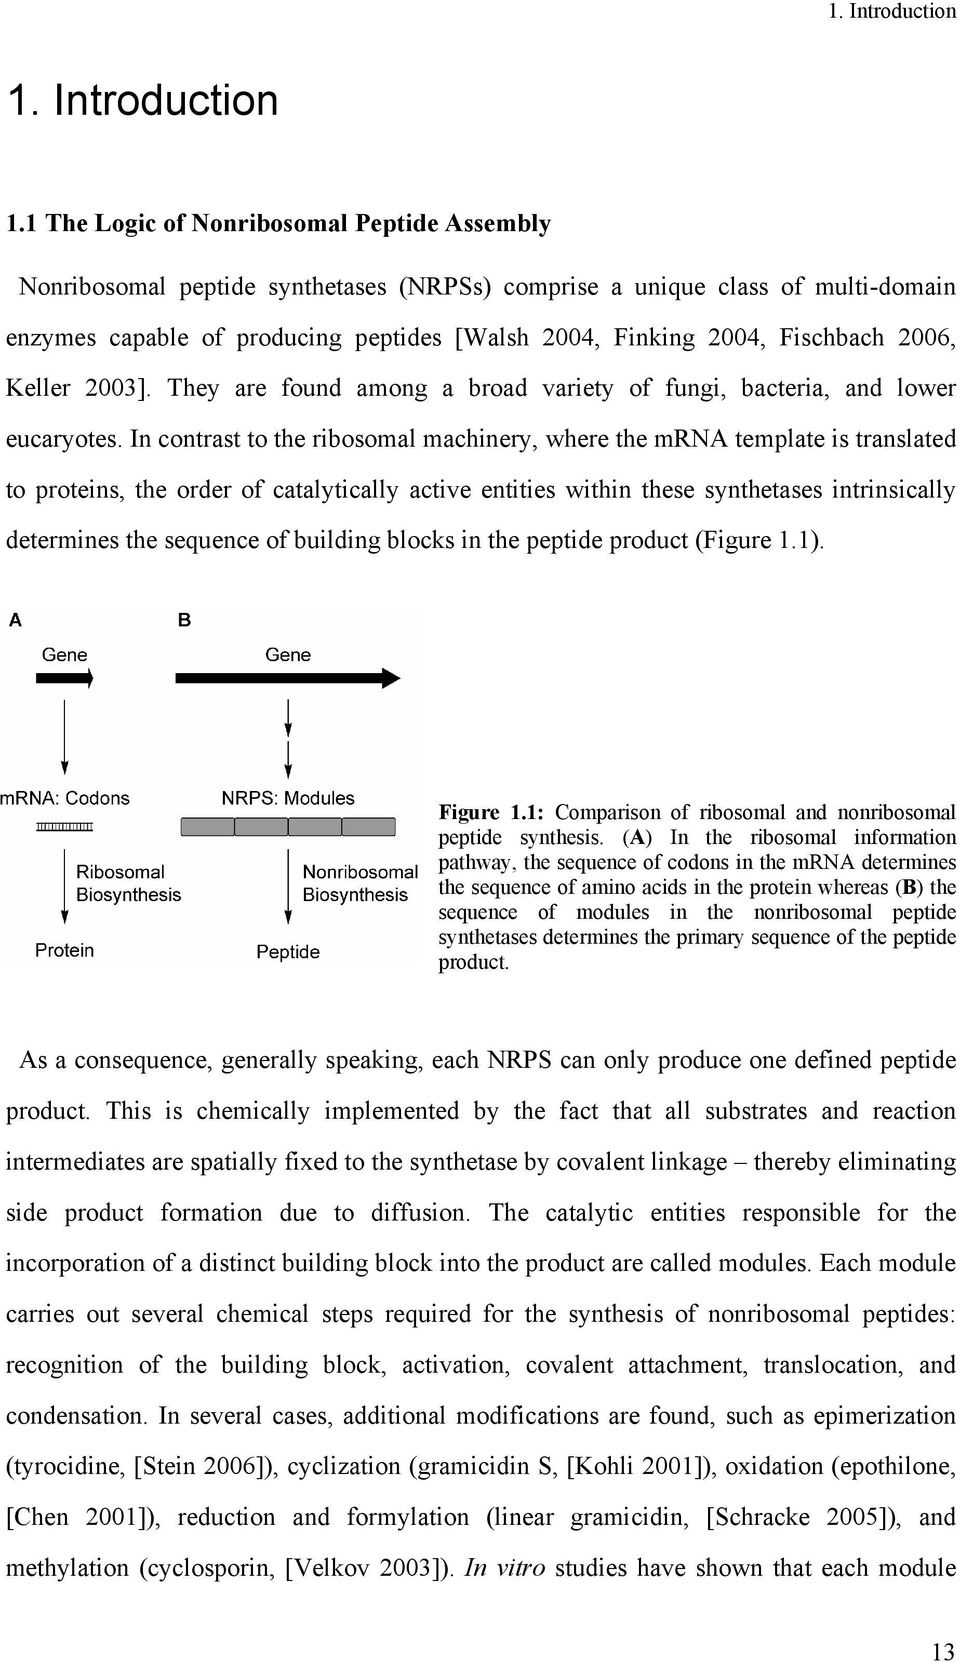 1 The Logic of Nonribosomal Peptide Assembly Nonribosomal peptide synthetases (NRPSs) comprise a unique class of multi-domain enzymes capable of producing peptides [Walsh 2004, Finking 2004,